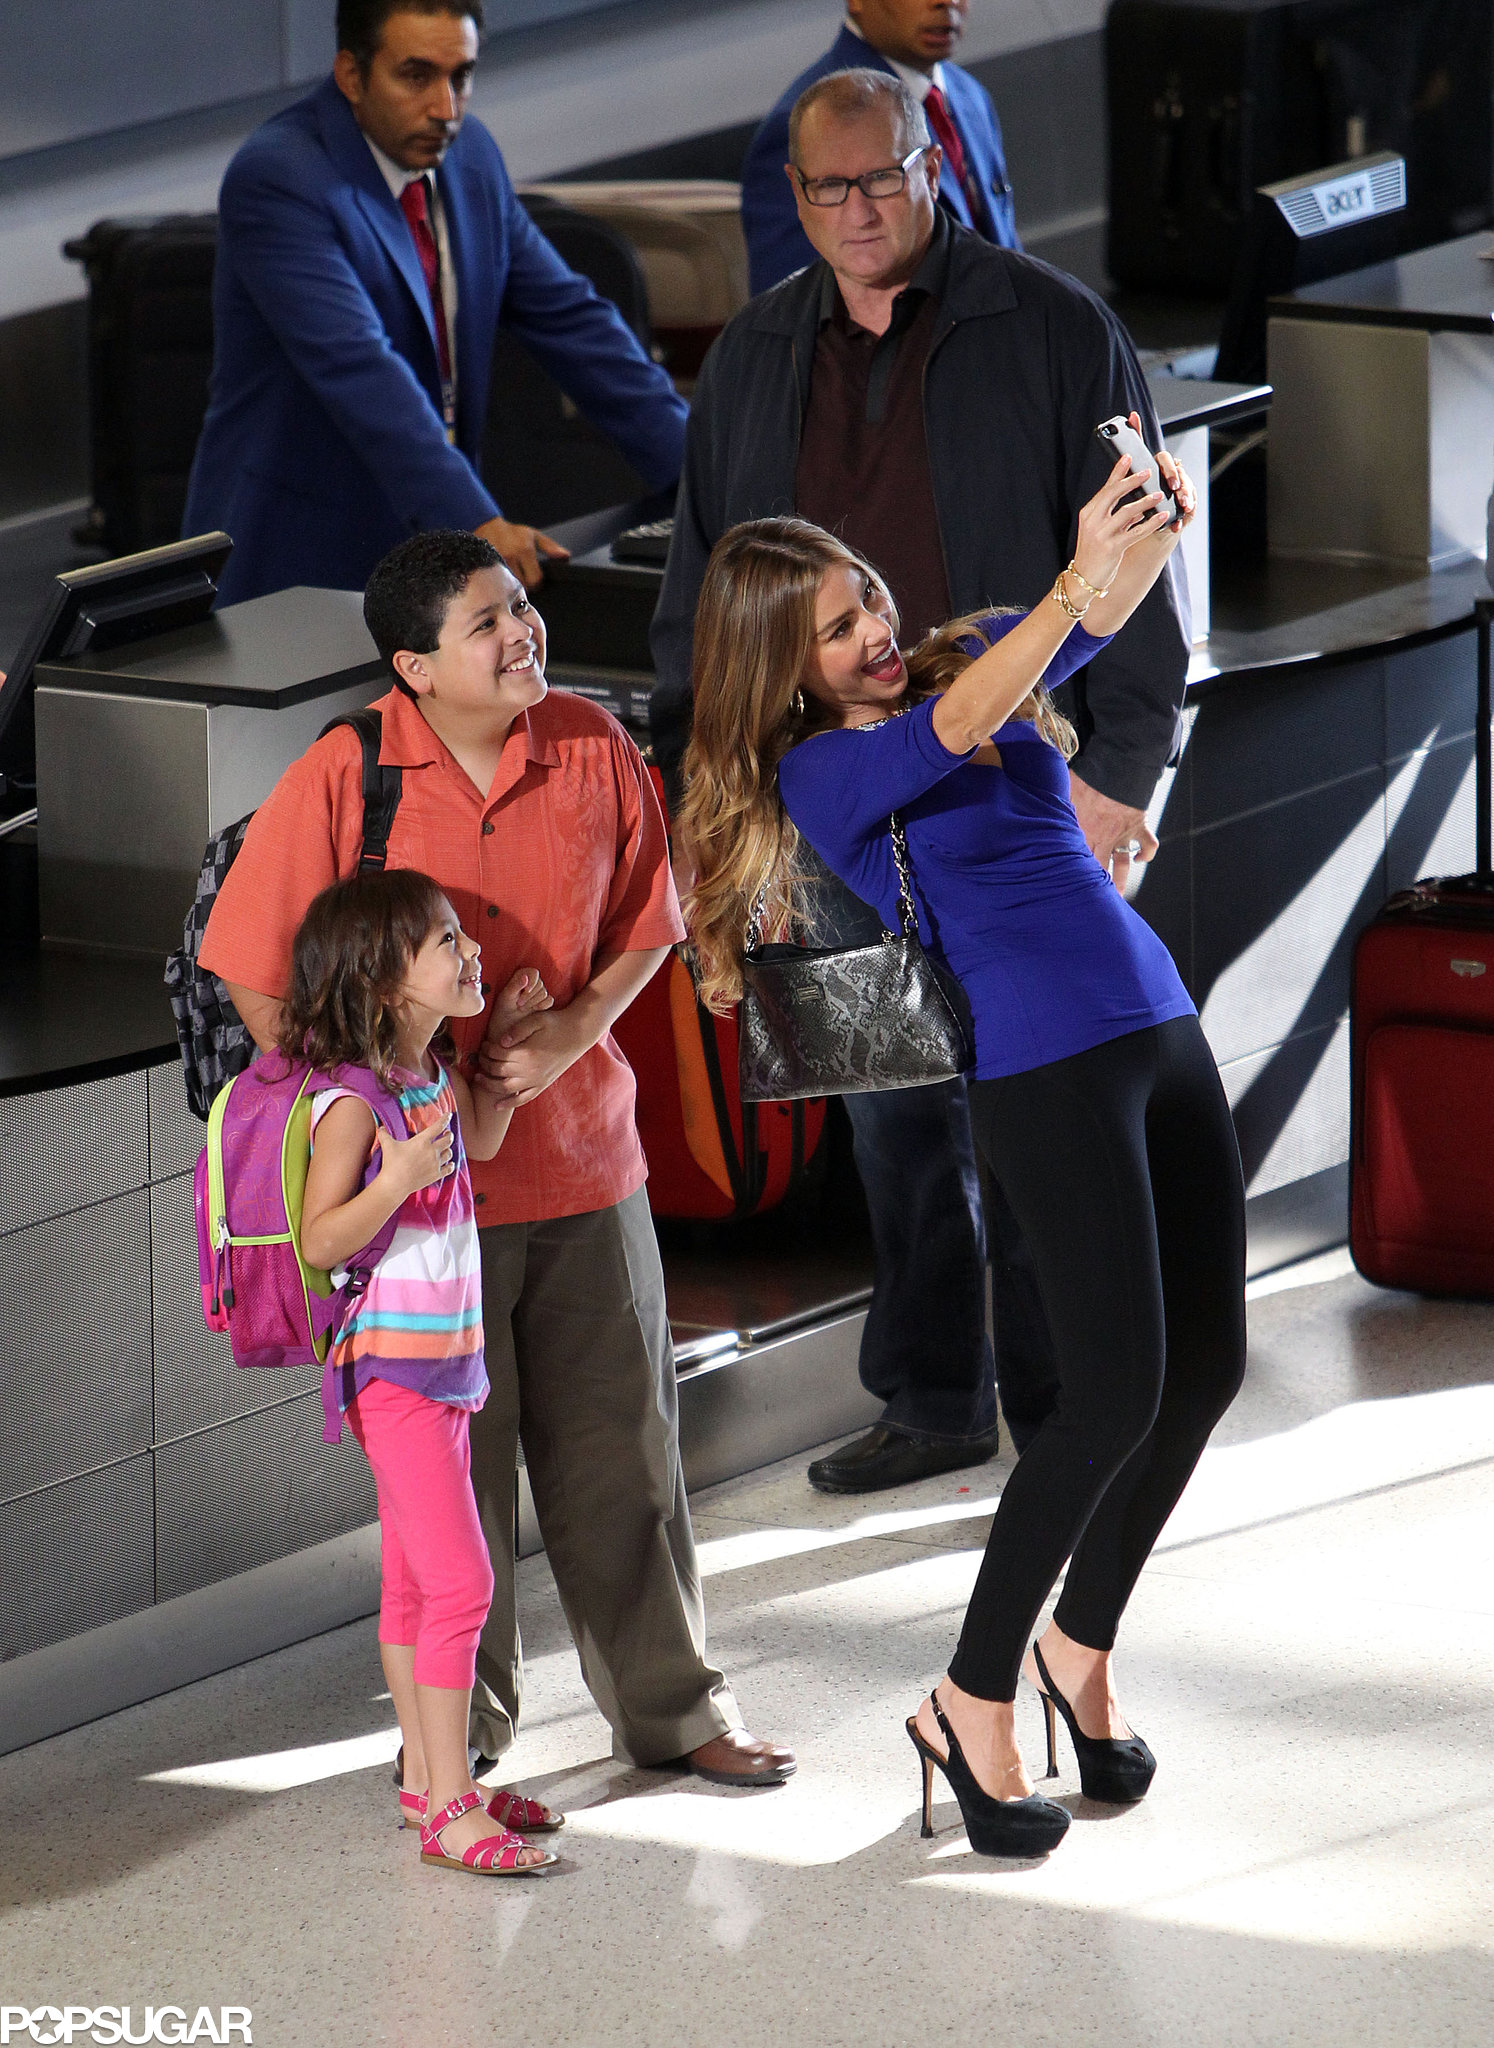 Sofia Vergara snapped a selfie with her costars Rico Rodriguez and Aubrey Anderson-Emmons